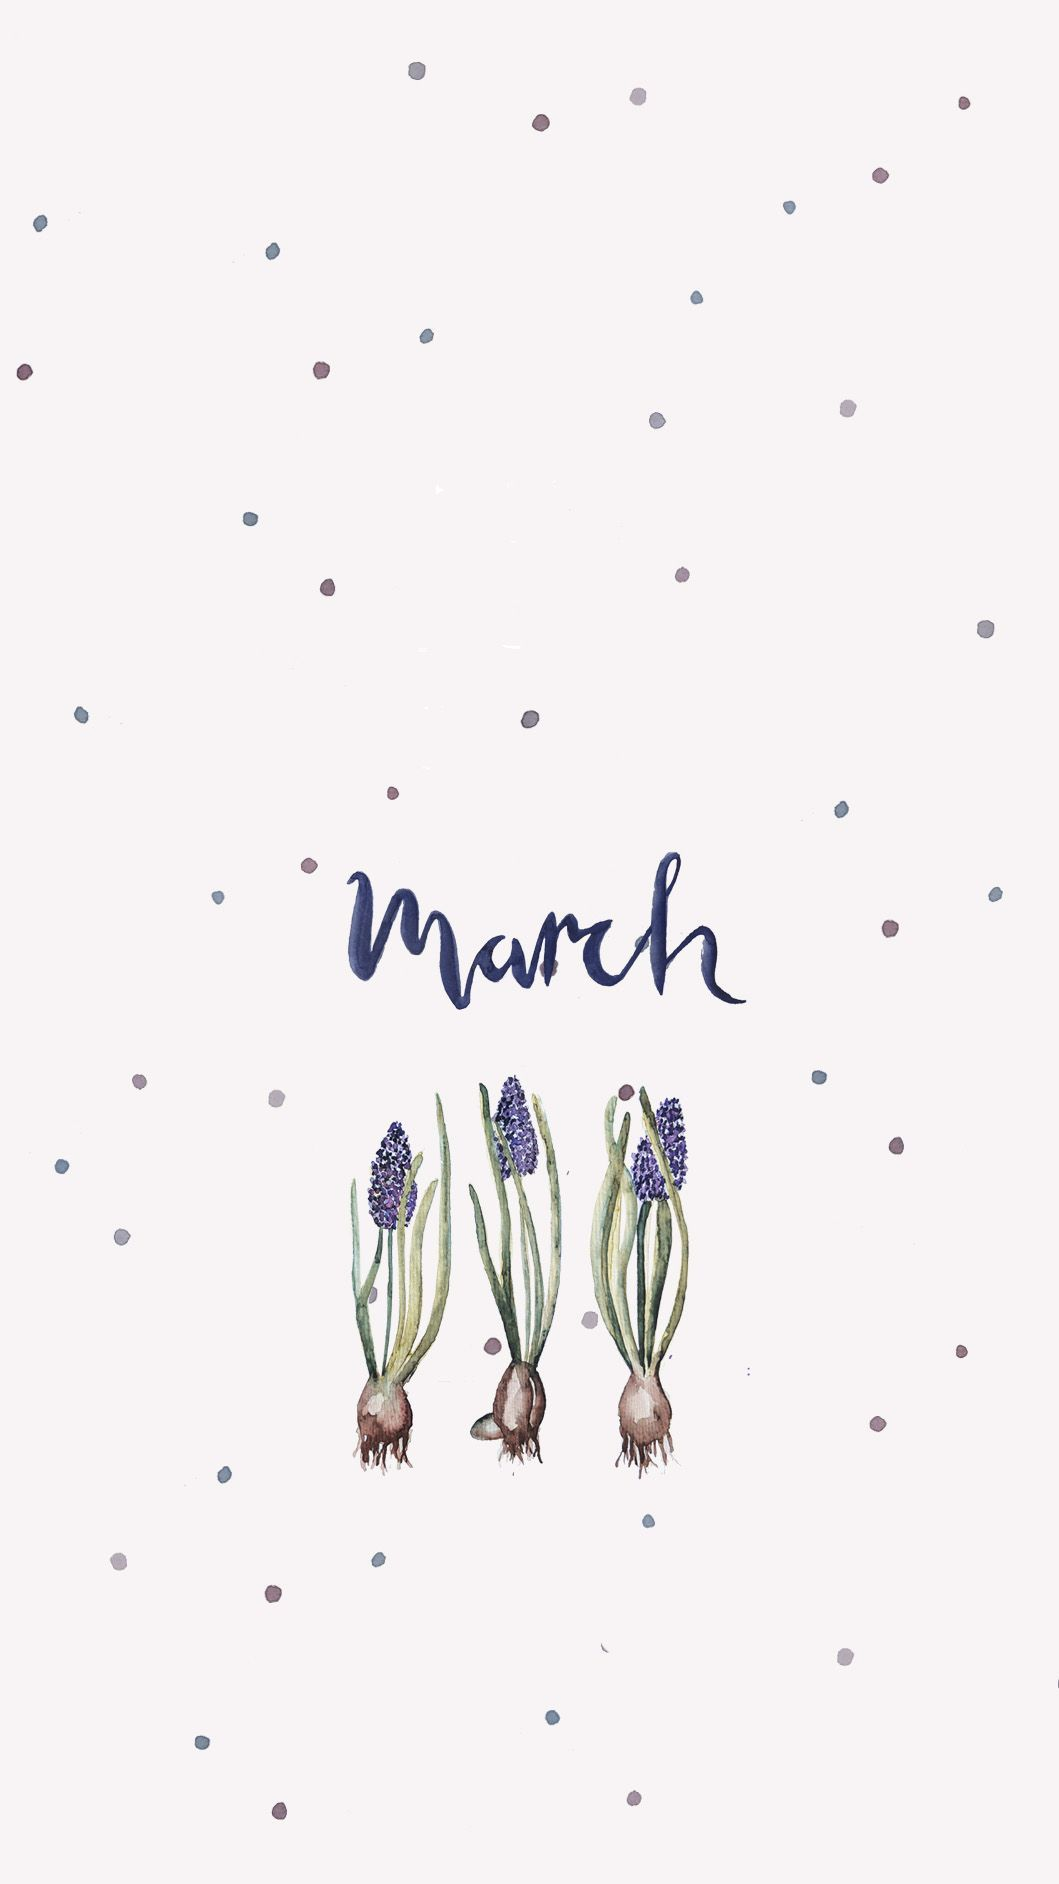 Newest Images March 2020 calendar wallpaper Popular Printer 1059x1884